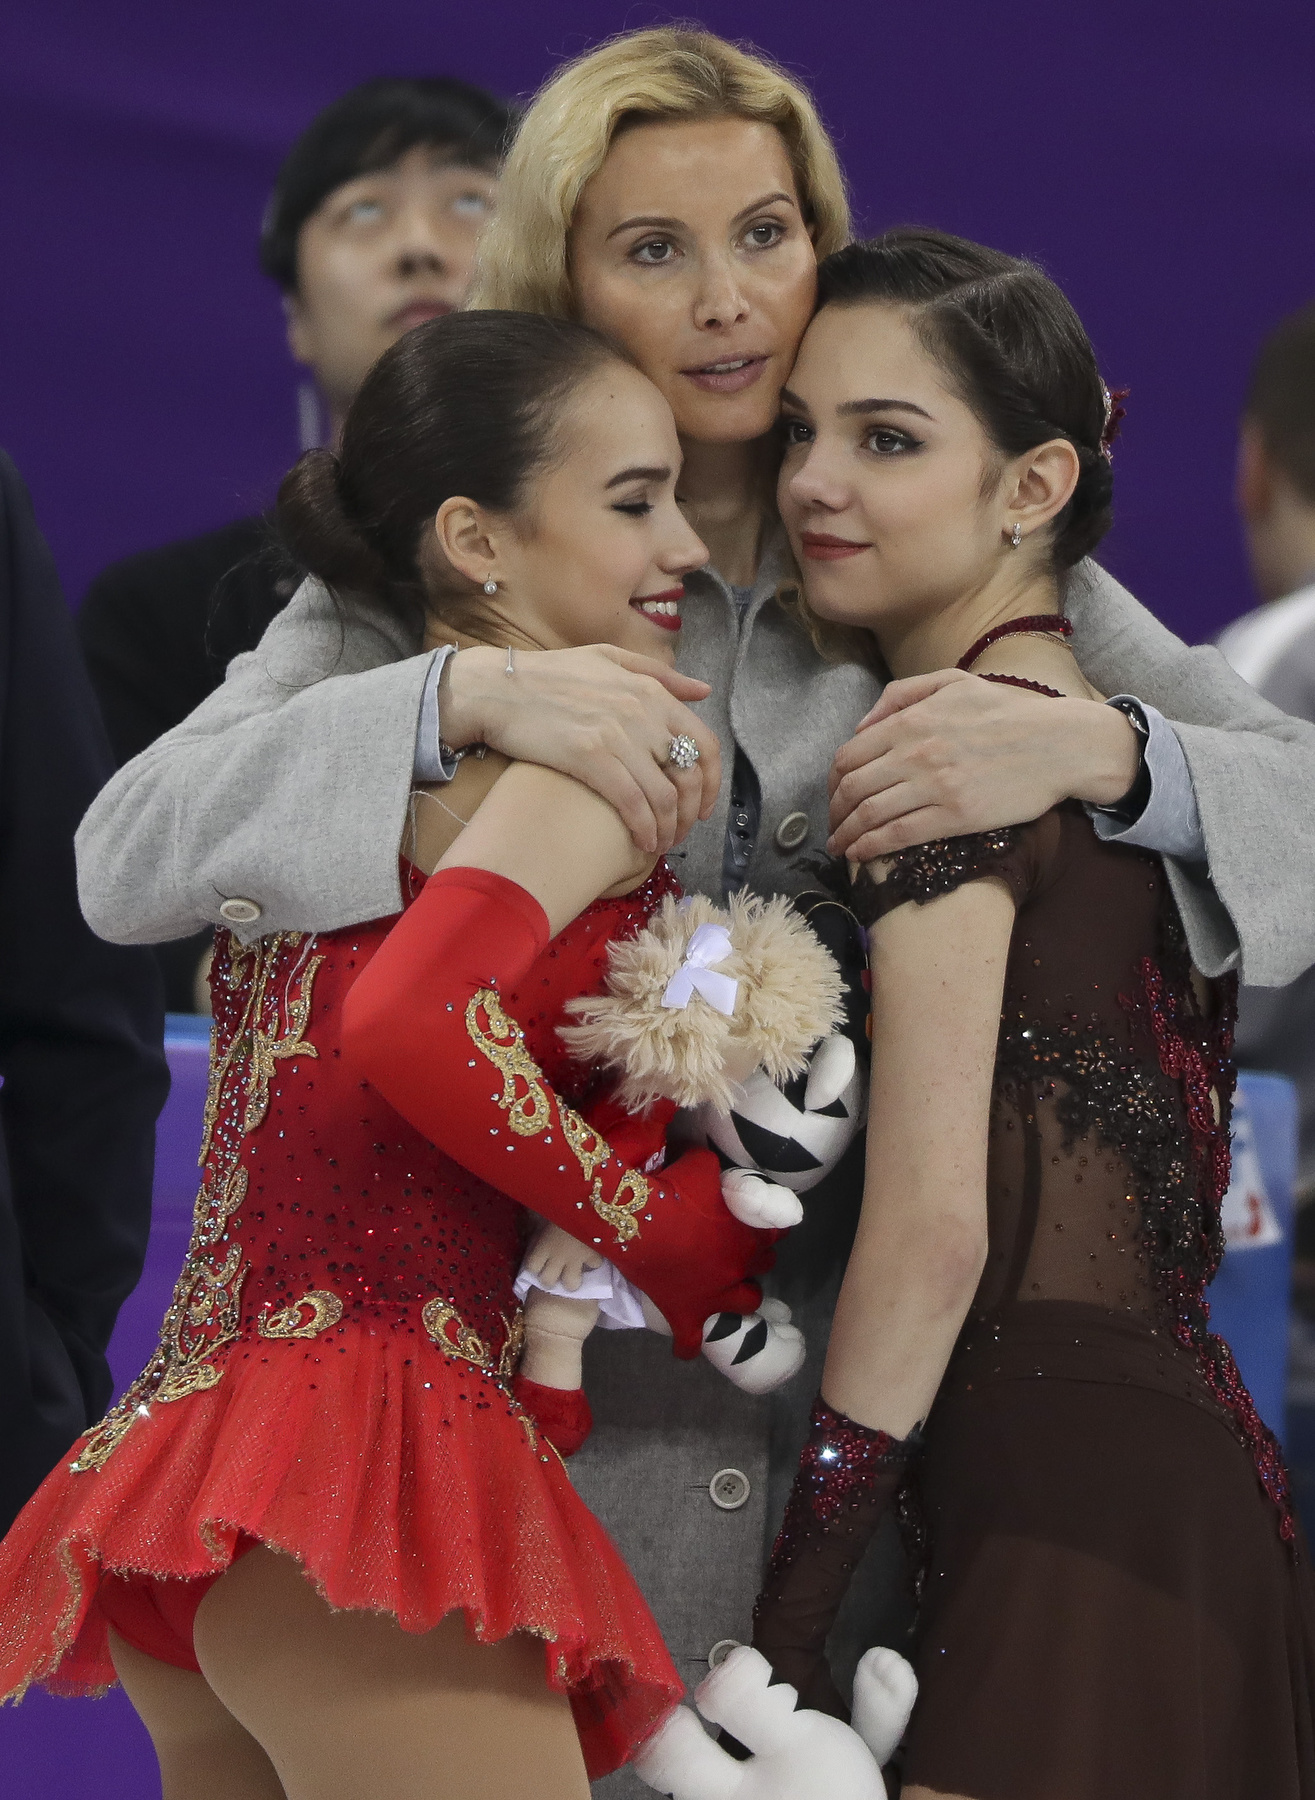 Arina and Dina Averiny-Russian artistic gymnasts, member of the Russian national team, multiple world champions (2017, 2018).